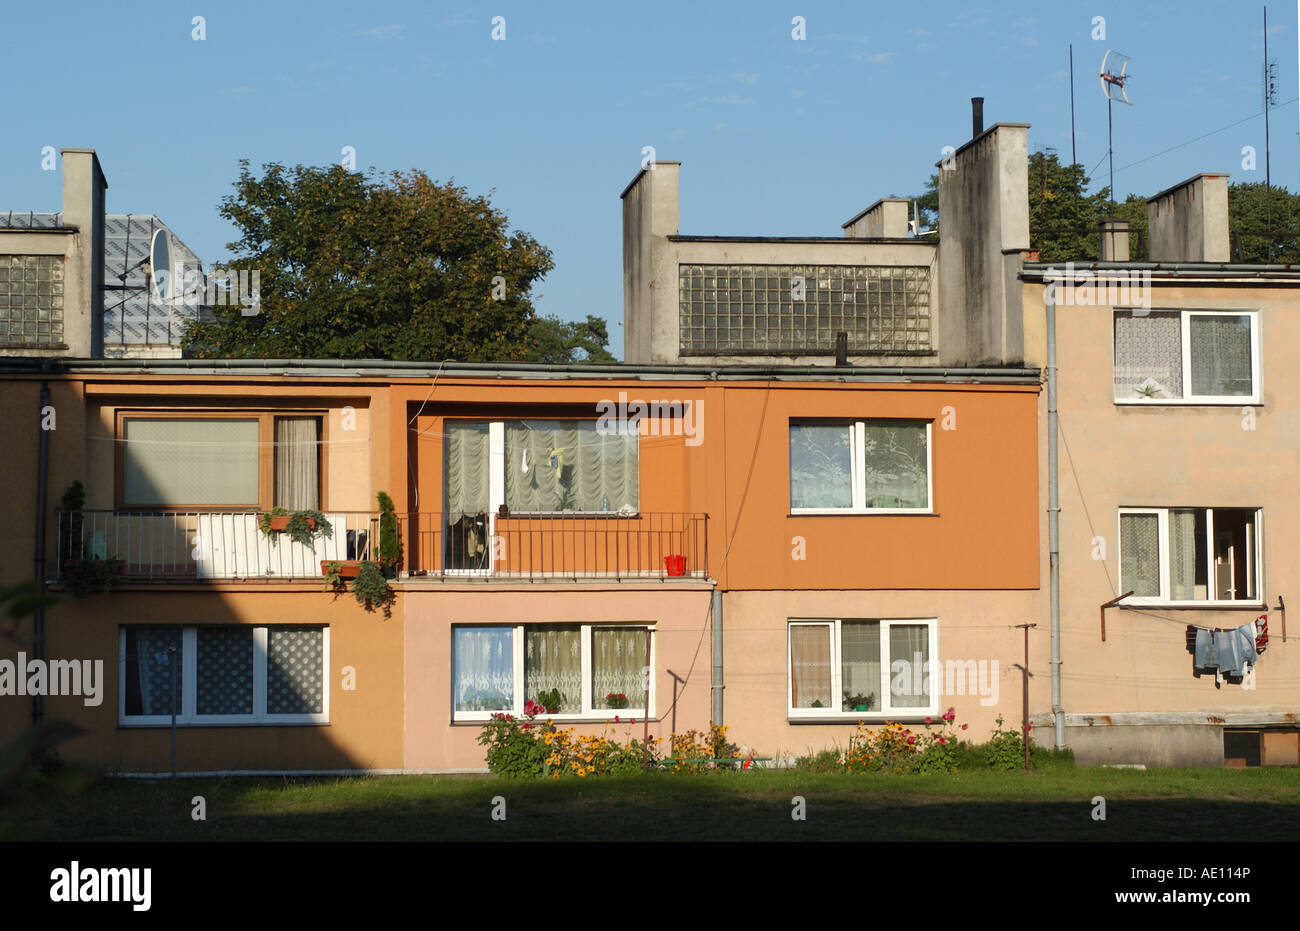 Block of flats in Dziwnow, Poland - Stock Image